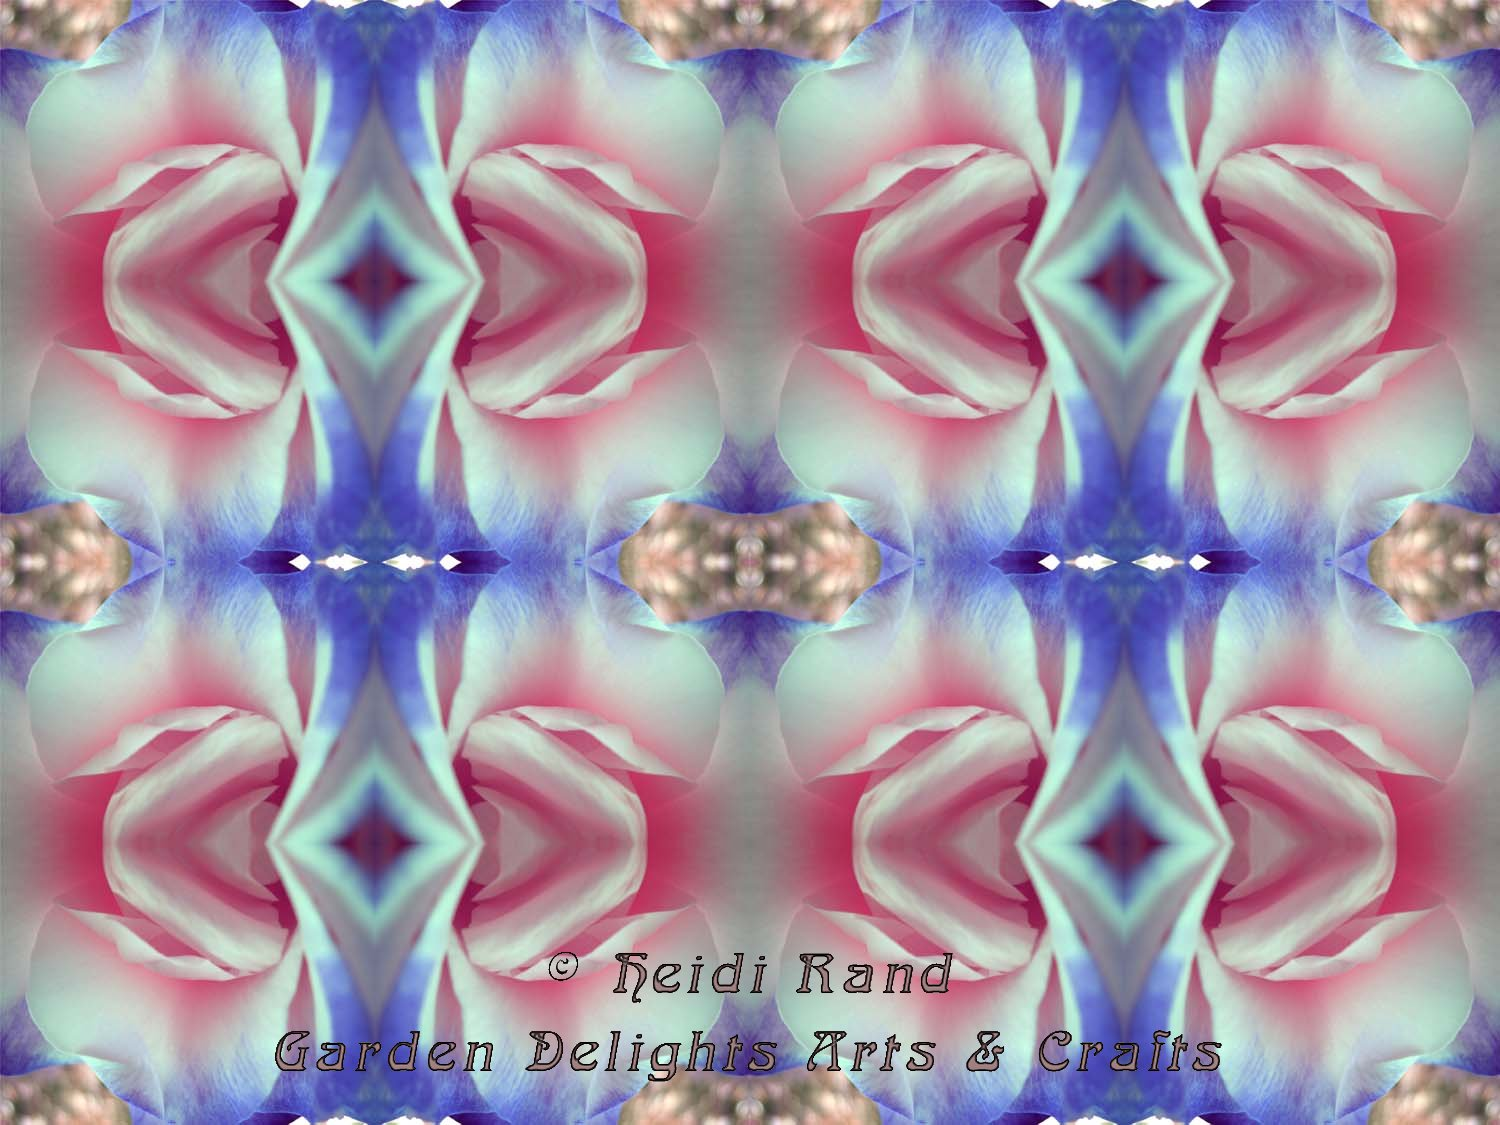 Double delight rose kaleidoscope